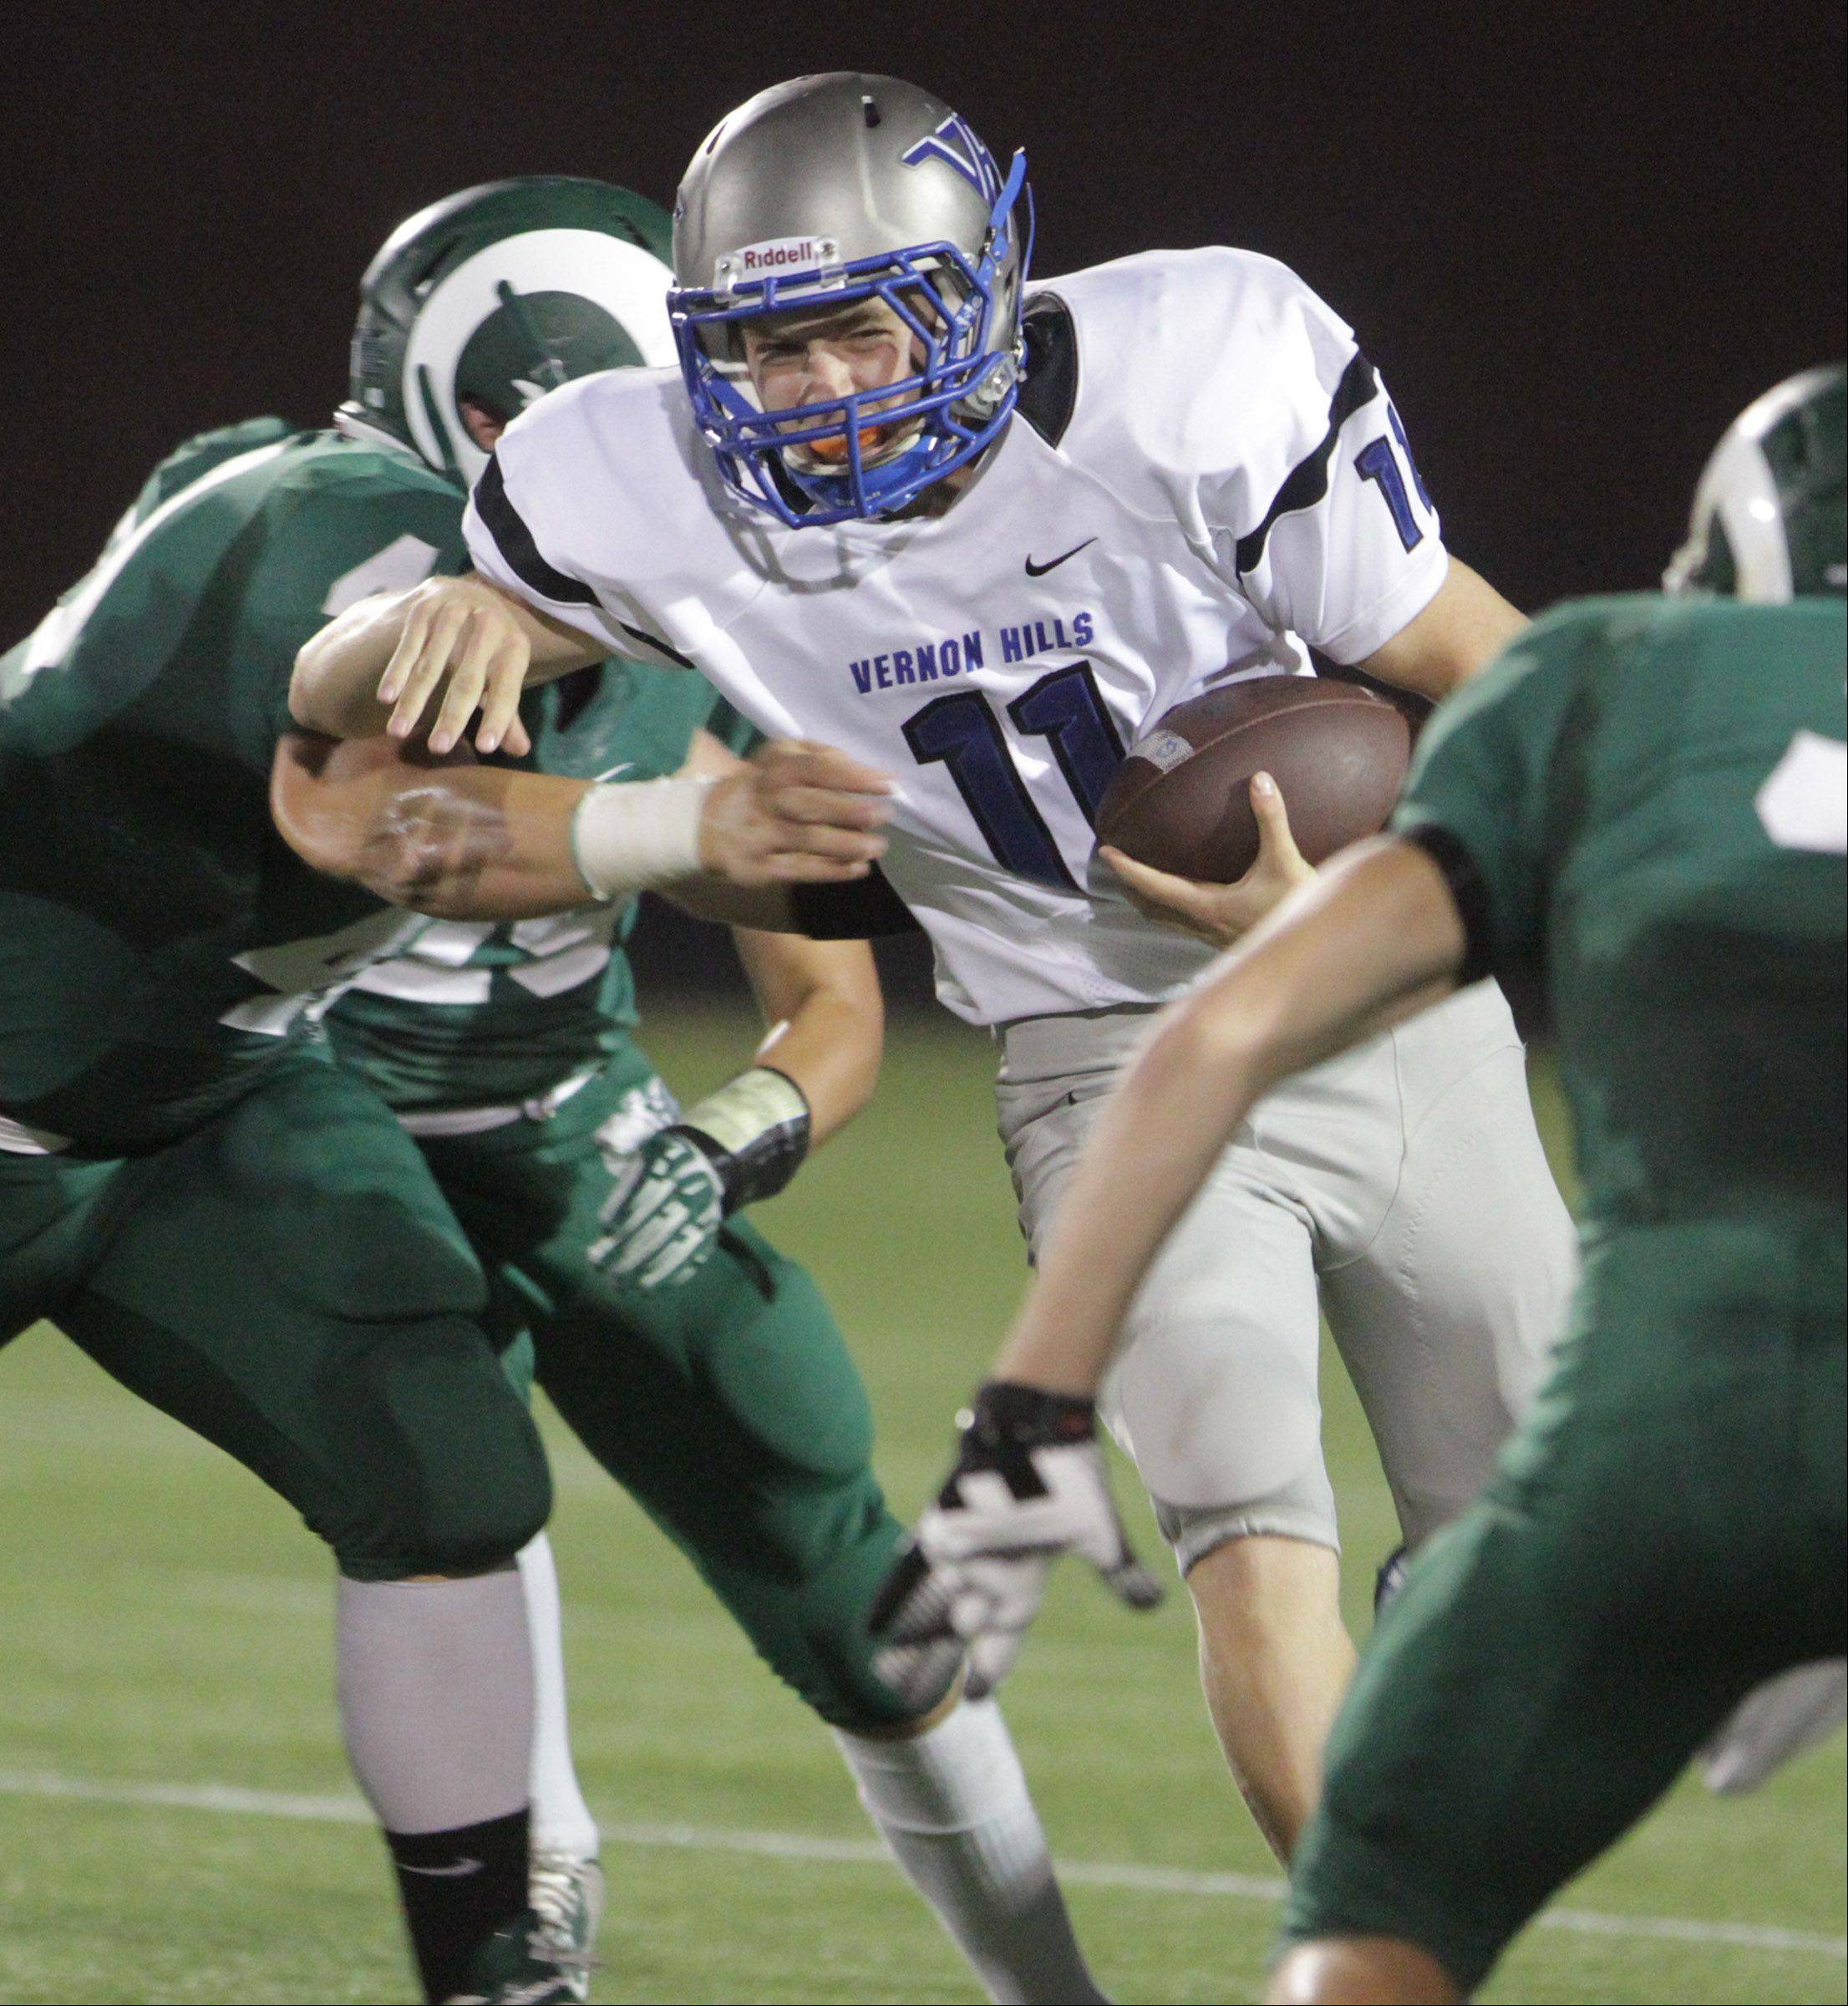 George LeClaire/gleclaire@dailyherald.com Vernon Hills' quarterback Connor McNamara runs the ball against Grayslake Central at Grayslake Central on Friday, September 6, 2013.